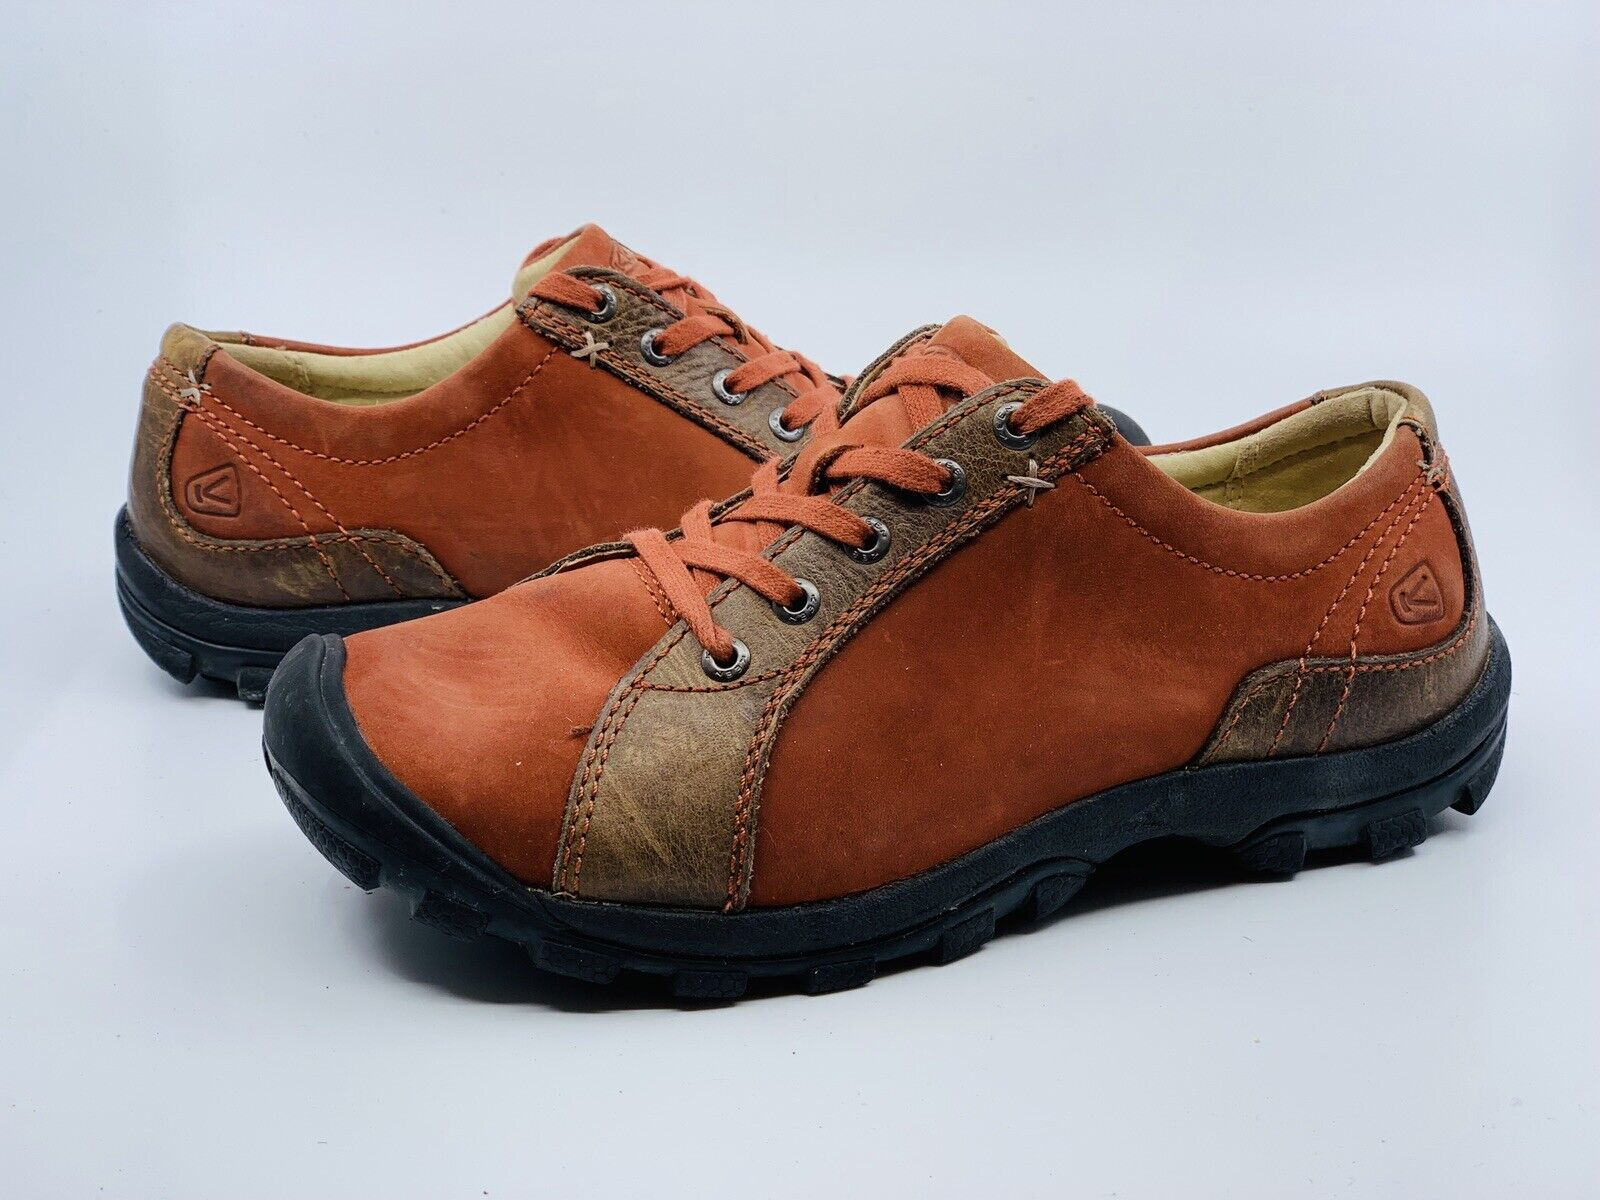 Keen Women's Sisters Lace Walking Shoes Brown Leather Casual Shoes Size 7.5